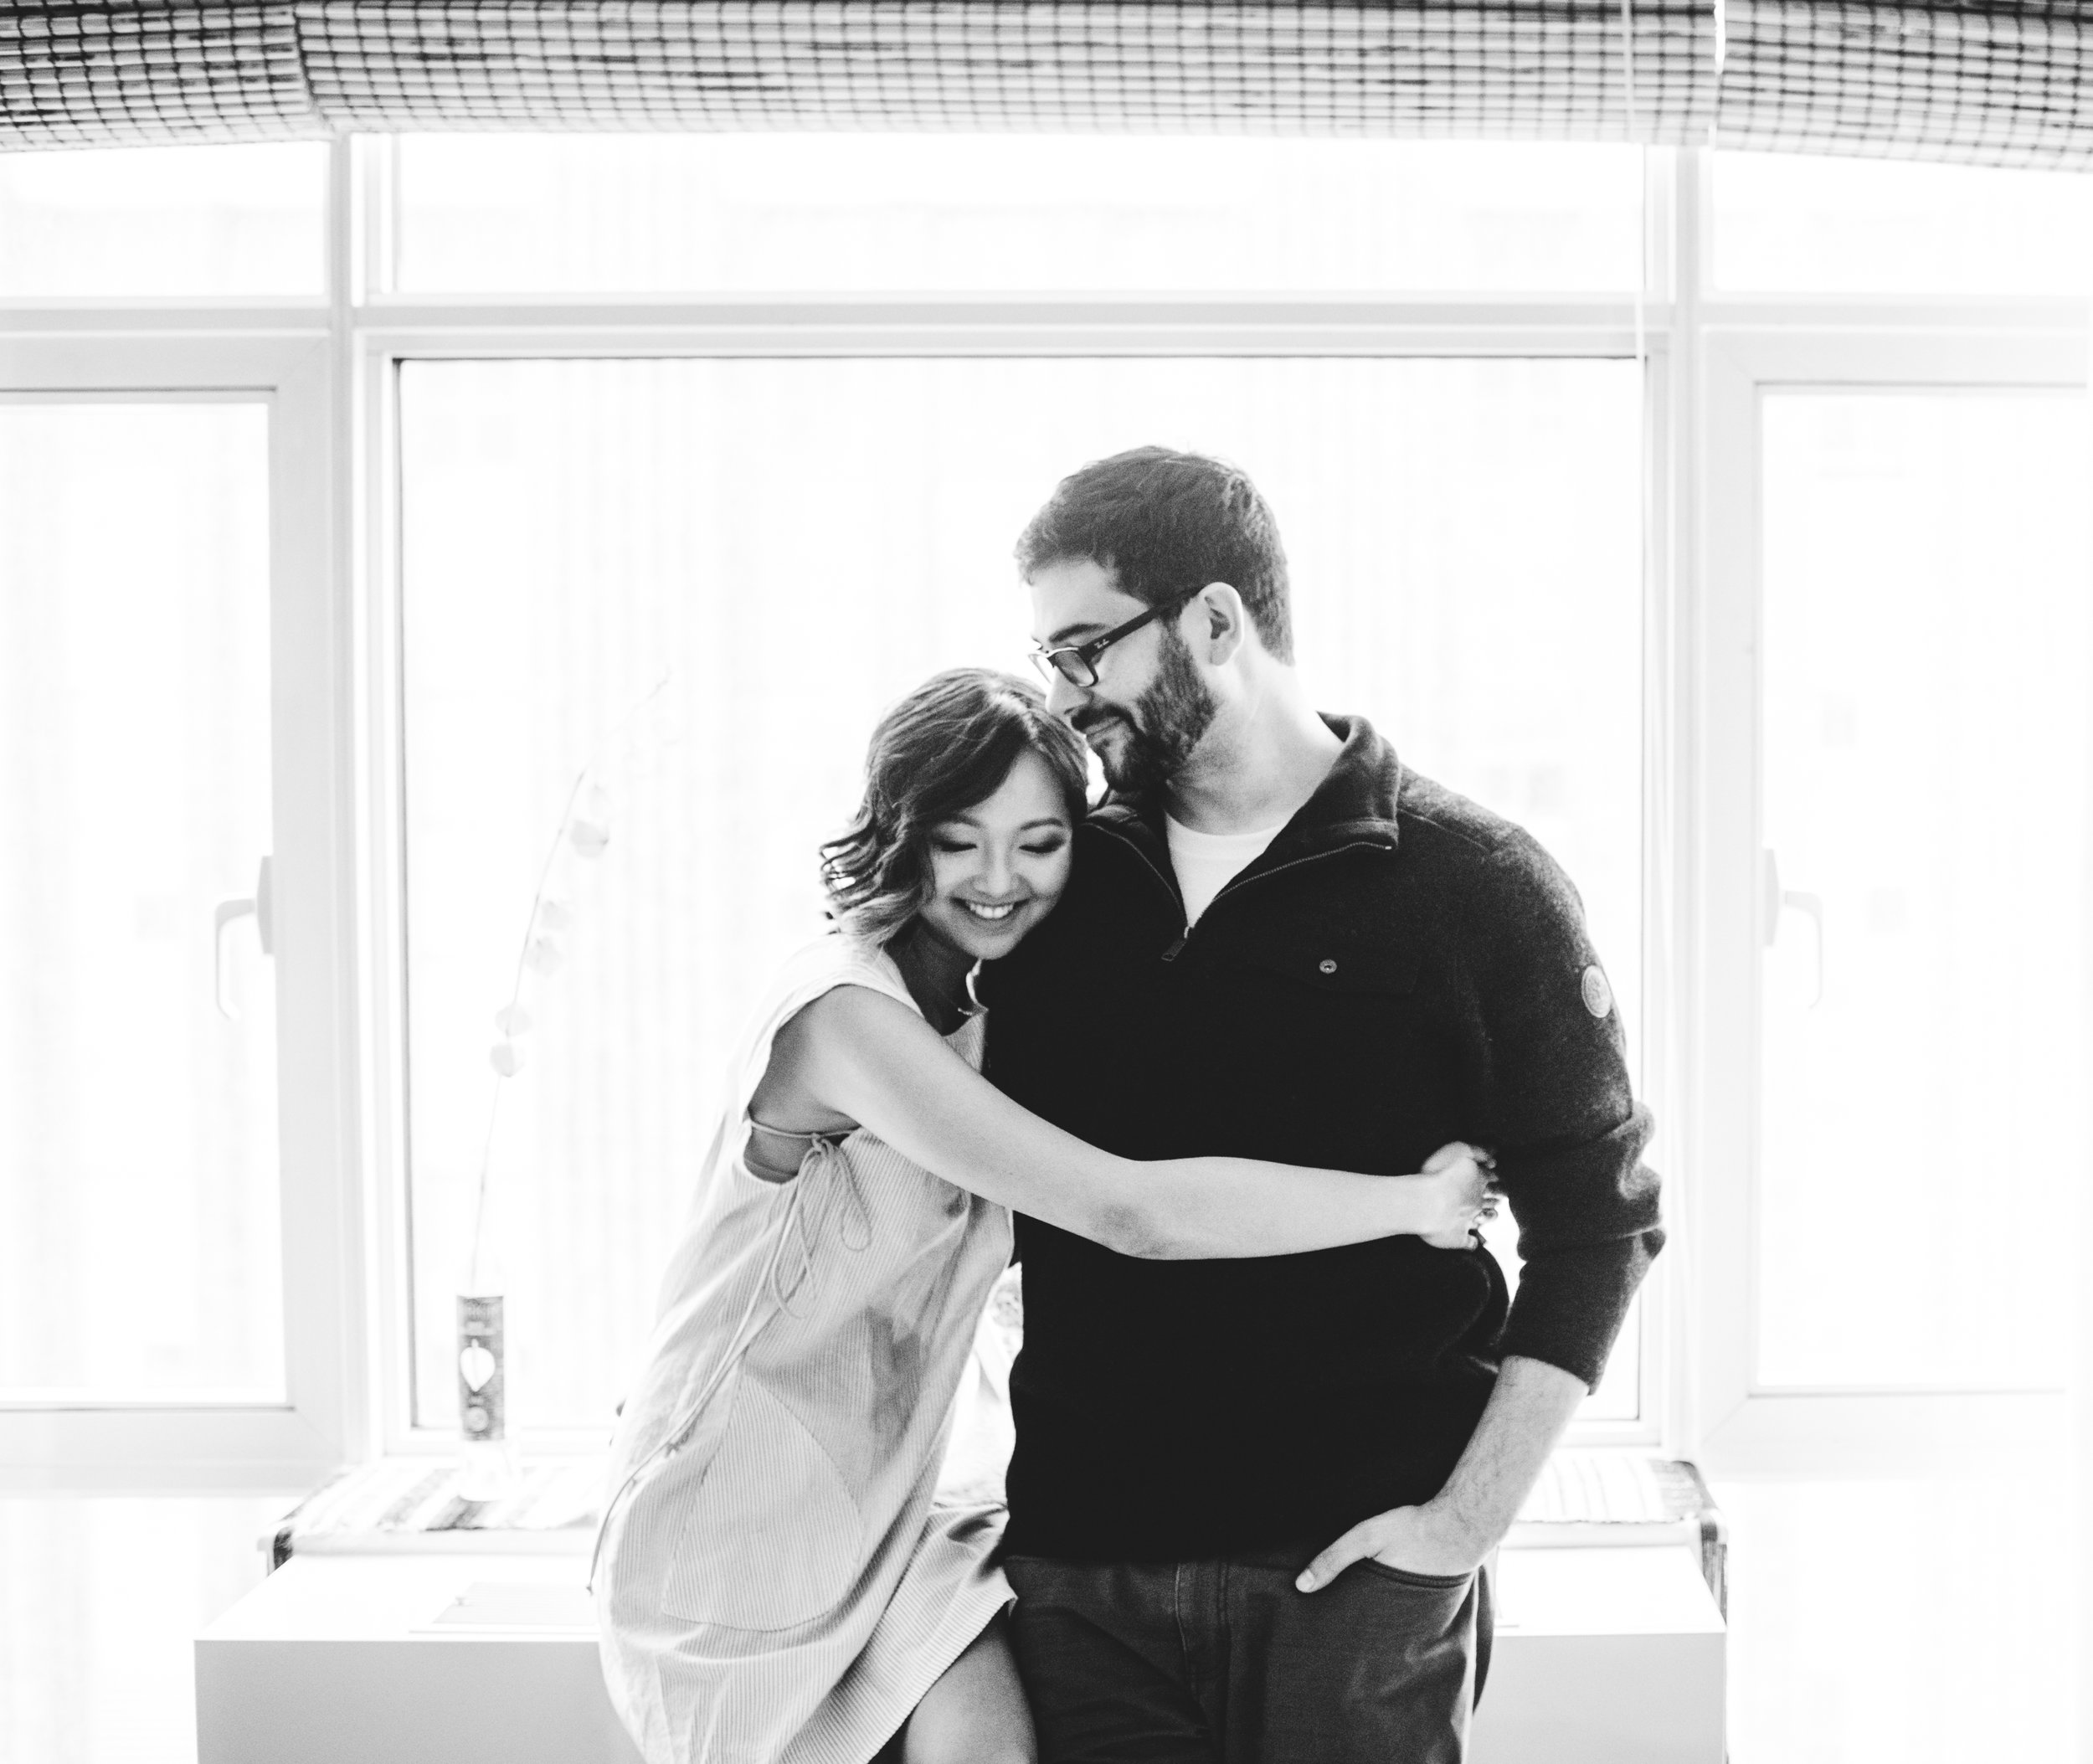 LILY & ANDREW - ENGAGED - TWOTWENTY by CHI-CHI AGBIM-52.jpg